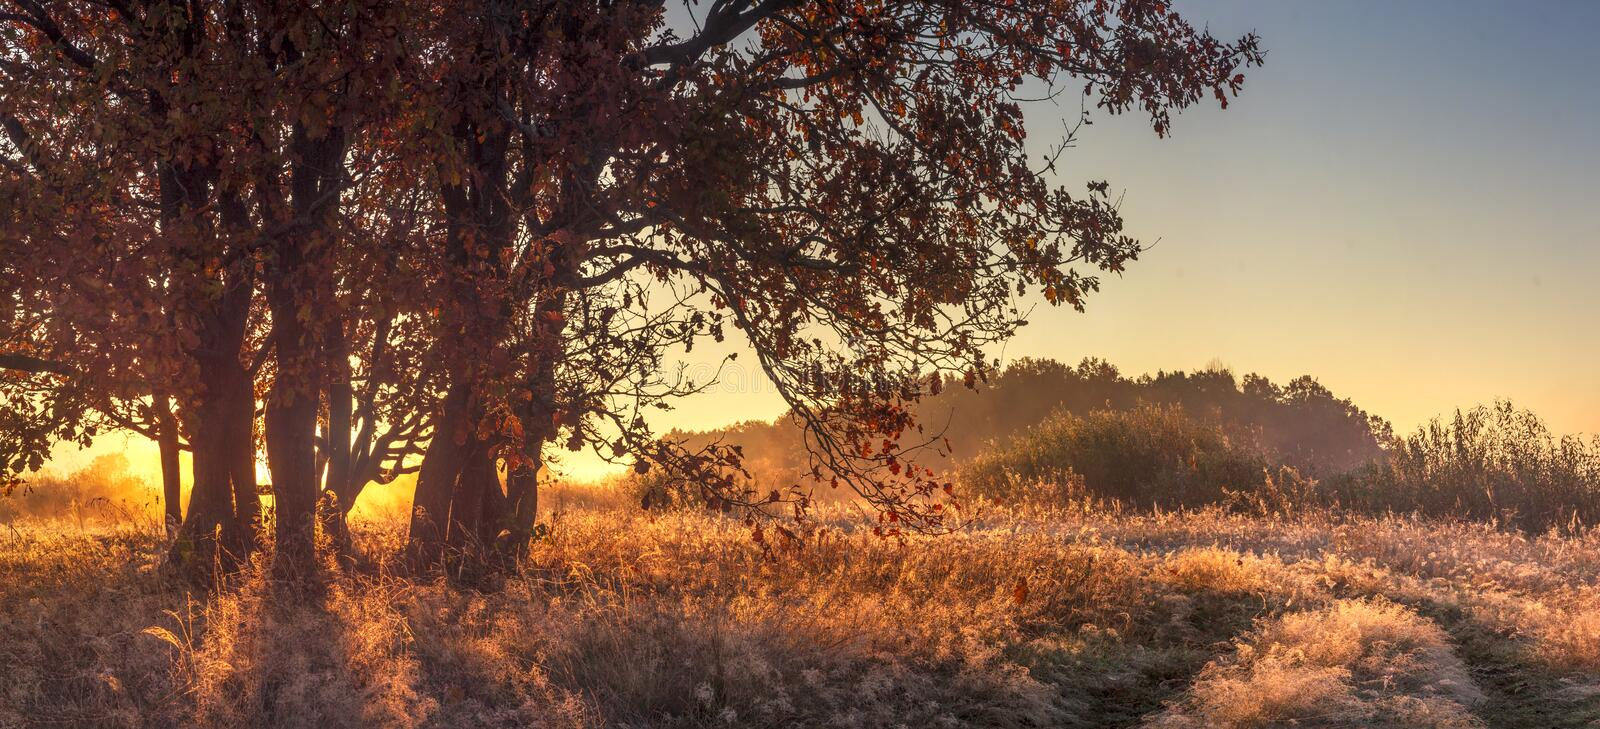 Panoramic landscape of autumn nature in the clear october morning. Large tree on golden grass in sunlight. Autumn nature landscape. On sunrise stock photography